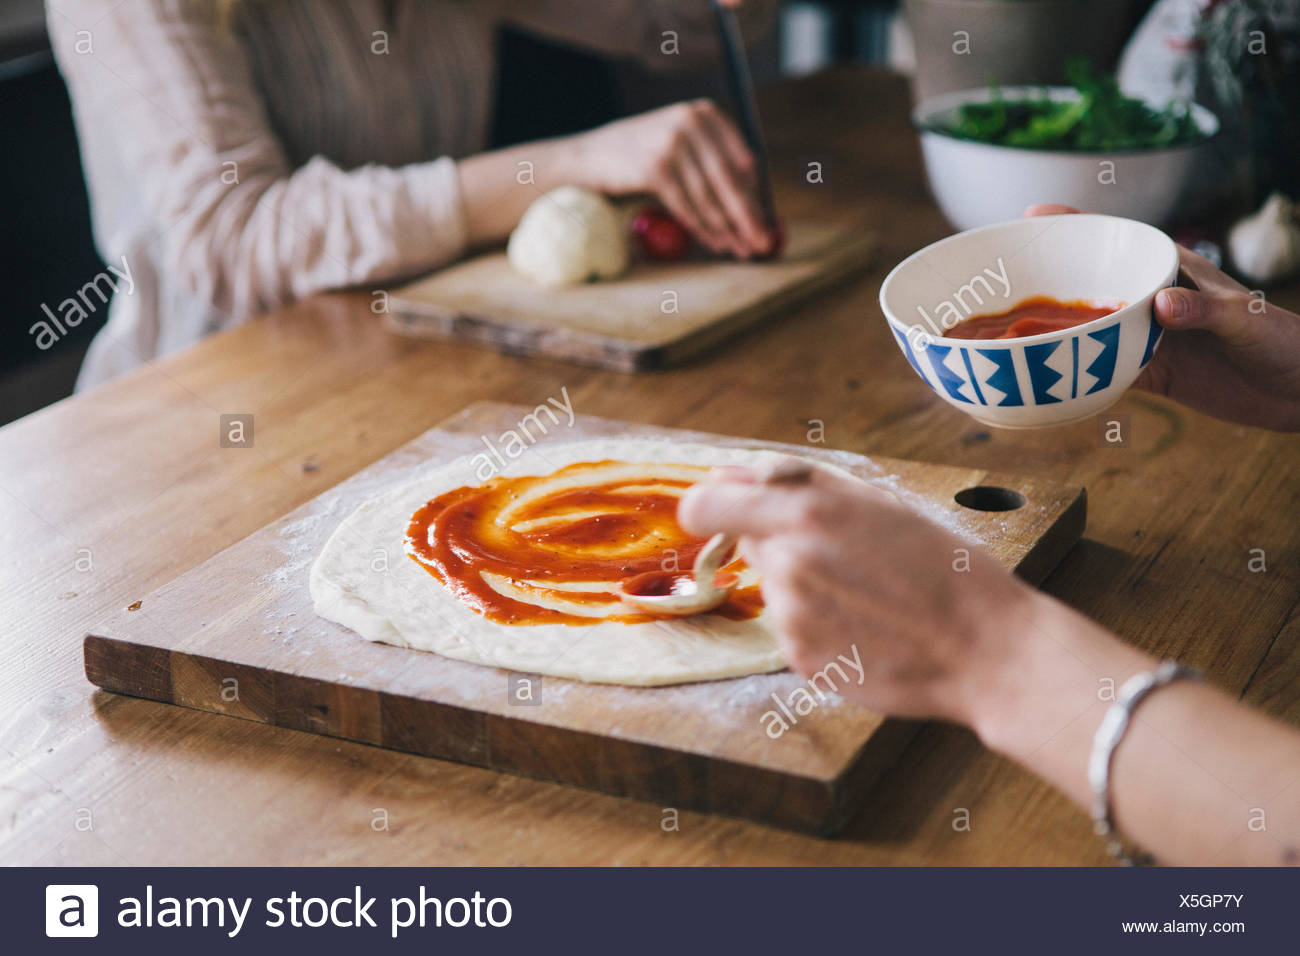 Cropped image of woman spreading tomato sauce over pizza dough - Stock Image